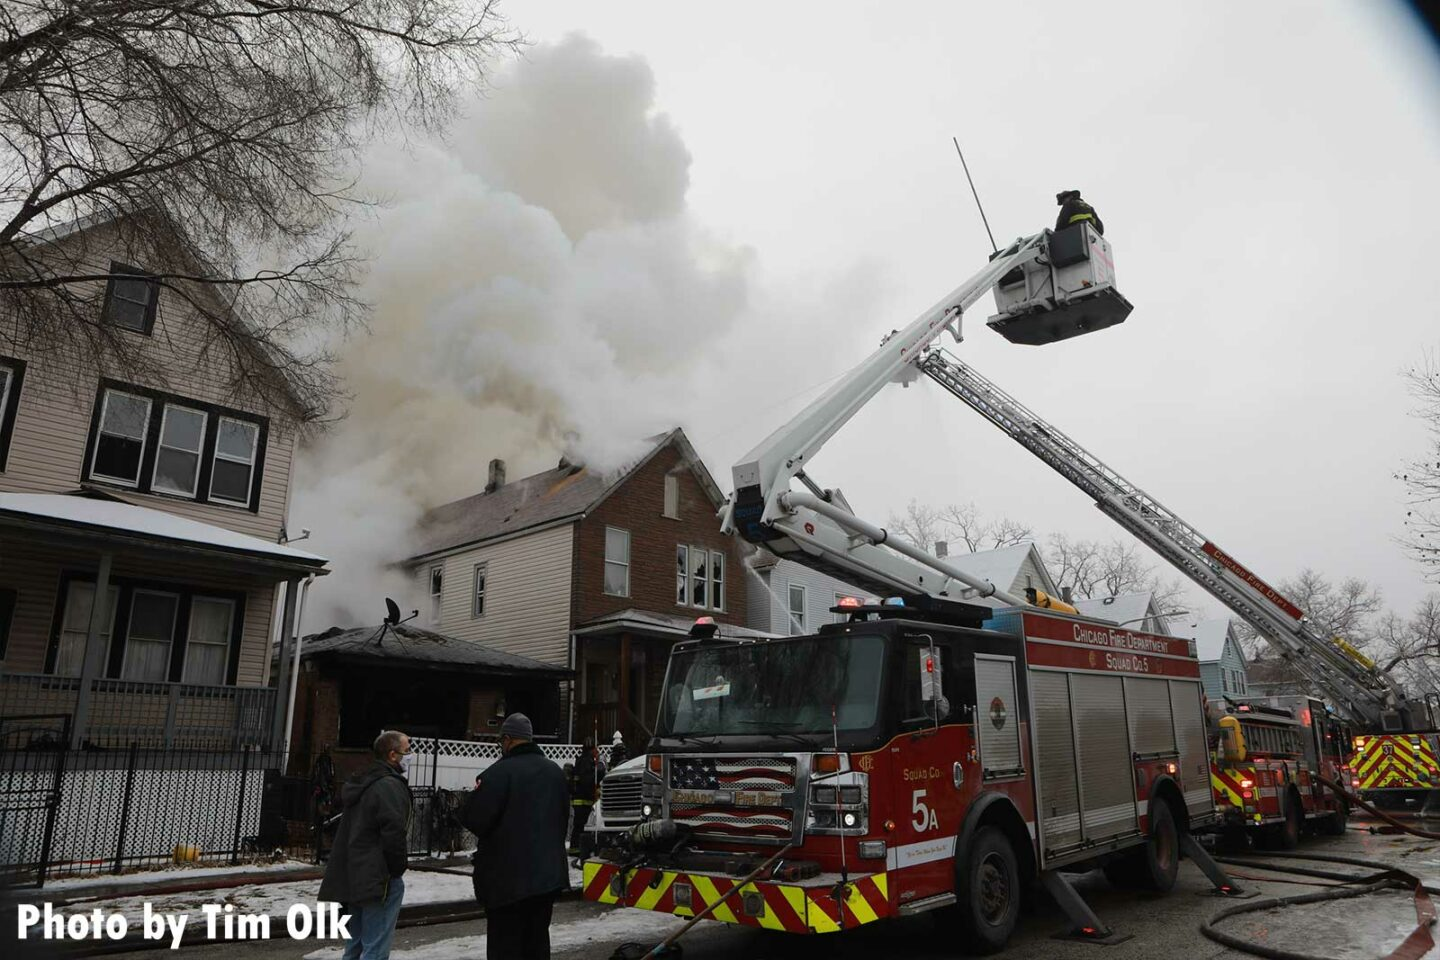 Chicago Squad 5 and tower ladder at a house fire